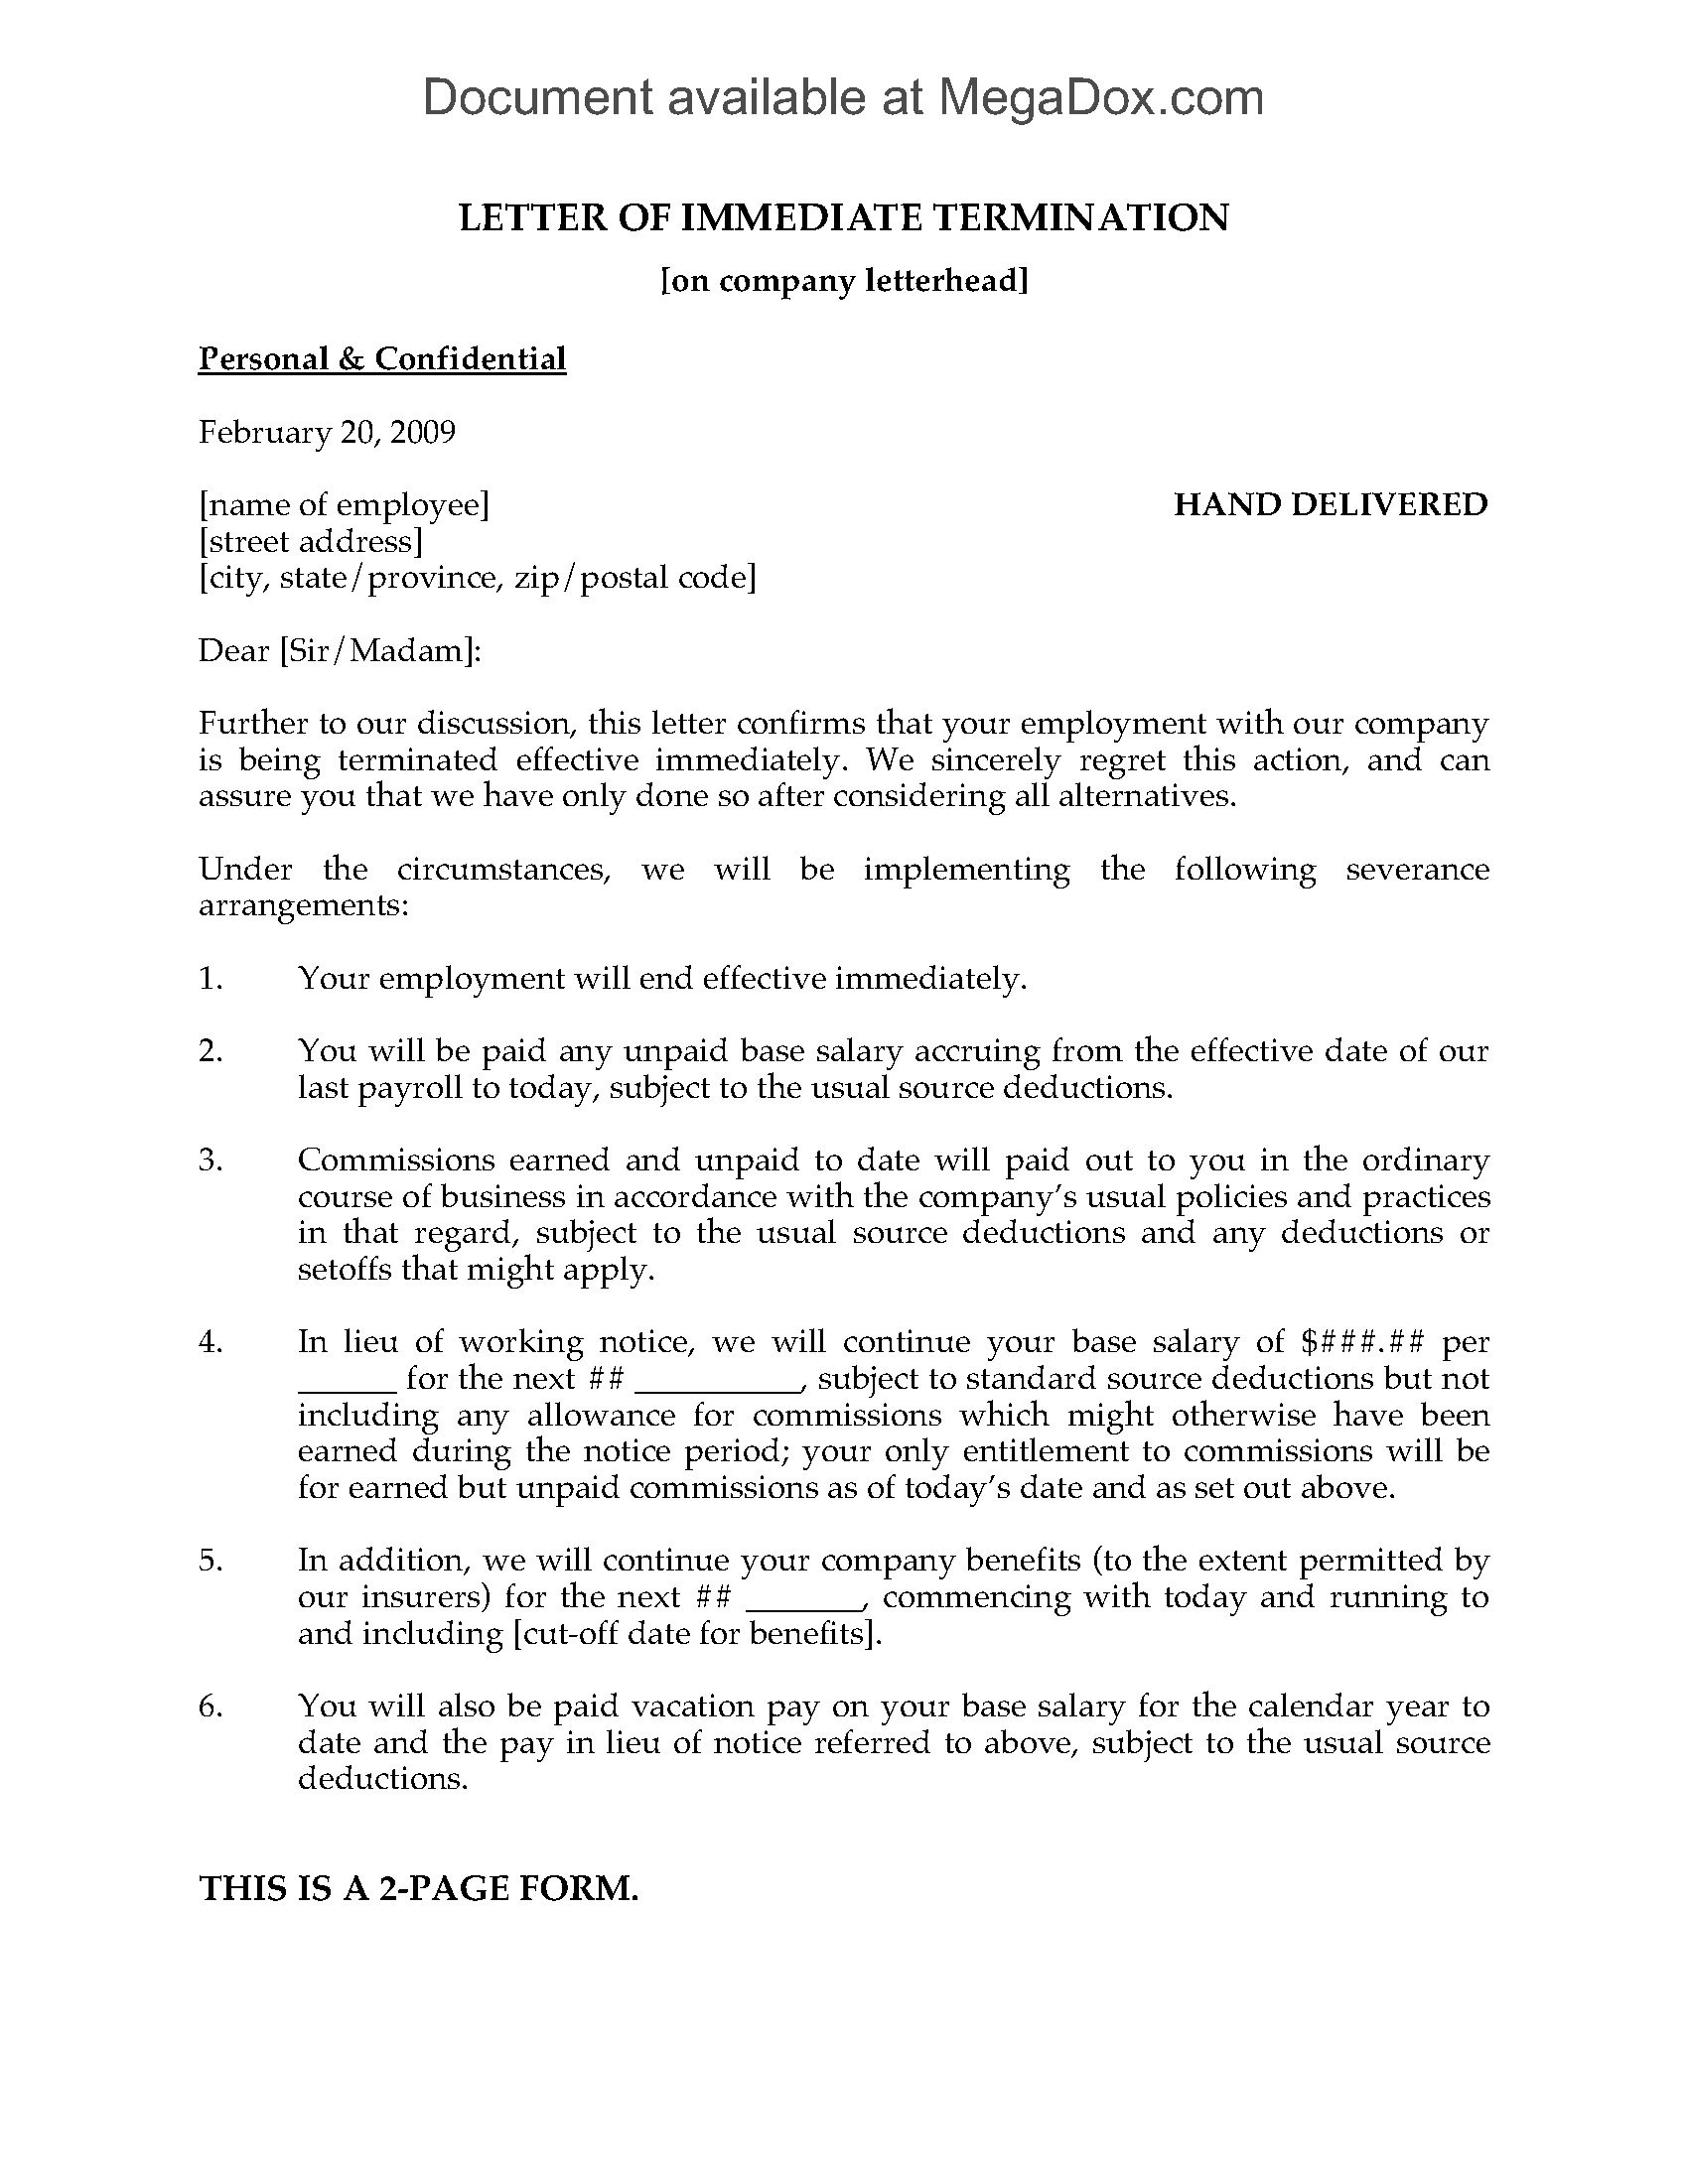 letter of termination template ontario  Letter of Immediate Termination of Employment | Legal ..